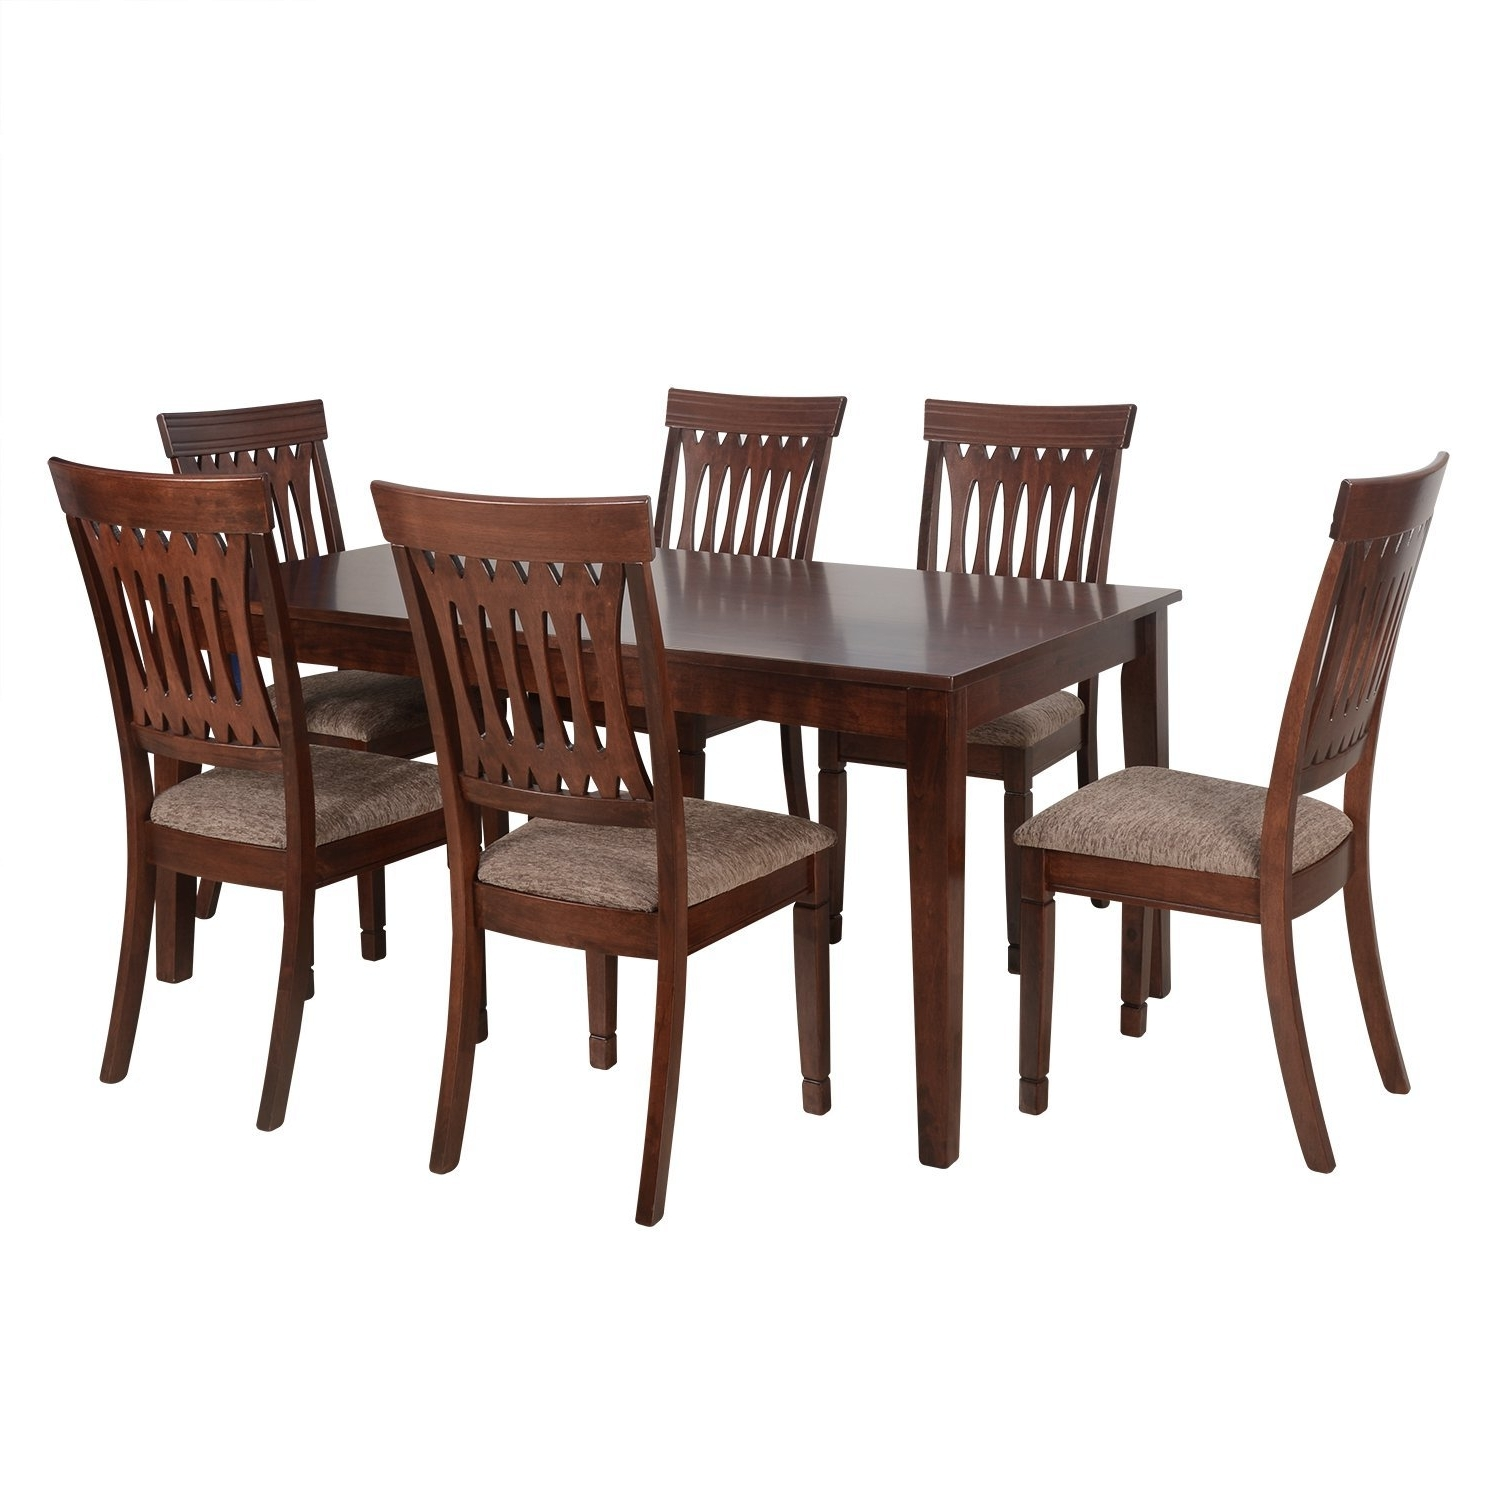 Six Seater Dining Set – Pharneechar – Online Furniture Store – Delhi/ncr Within Popular Six Seater Dining Tables (View 17 of 25)